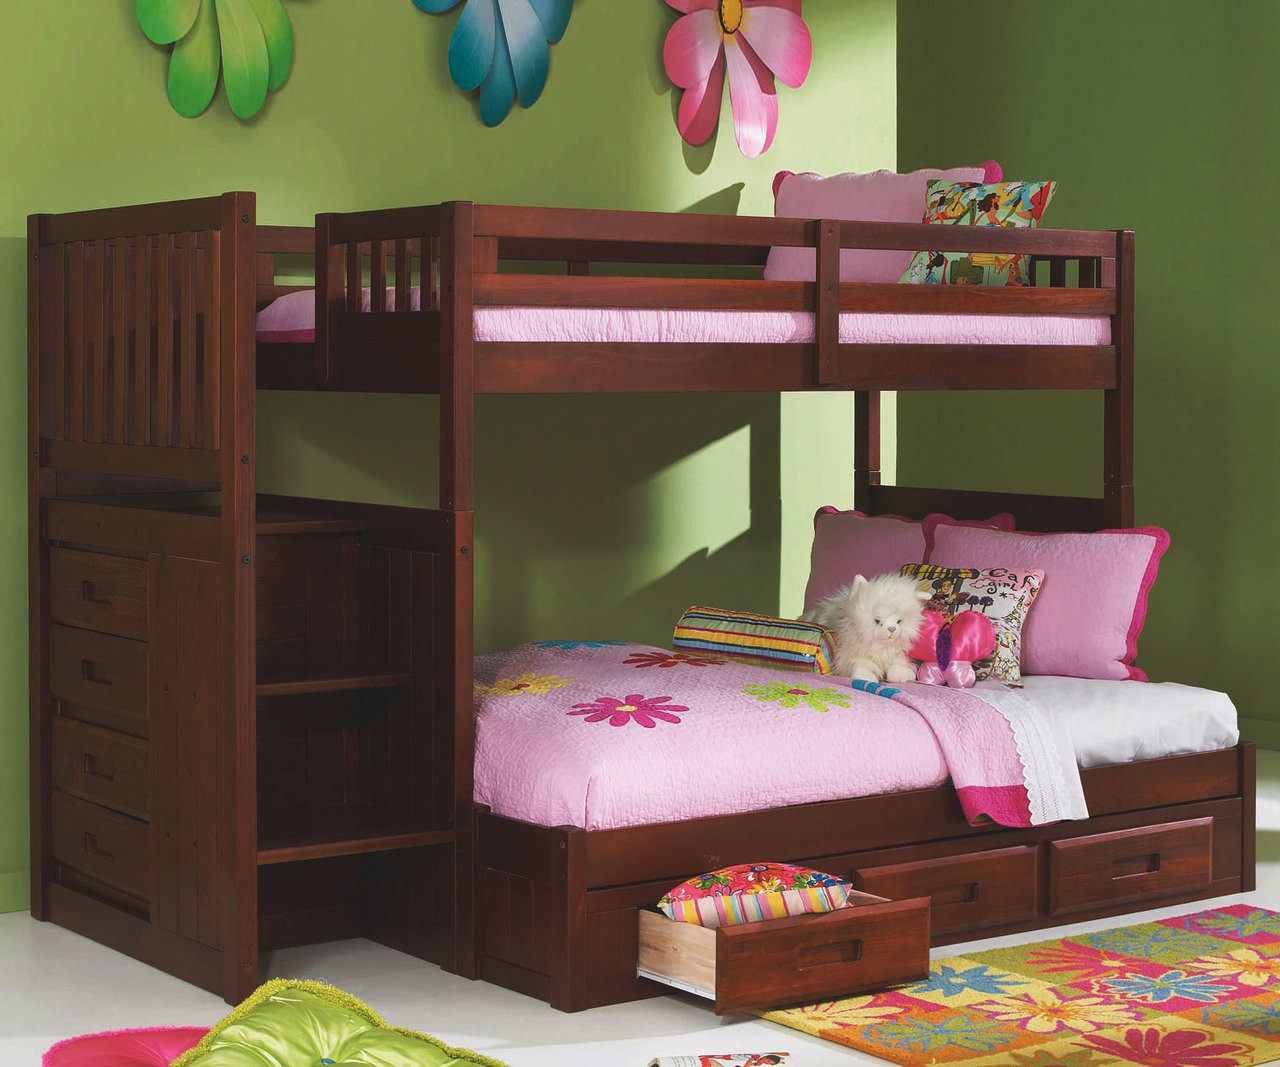 Picture of: Merlot Finish Mission Stairstepper Bunk Bed At Kids Furniture Warehouse Merlot Bunk Bed With Stairs In Orlando And Tampa With Delivery Available Bunk Beds With Stairs In Central Florida